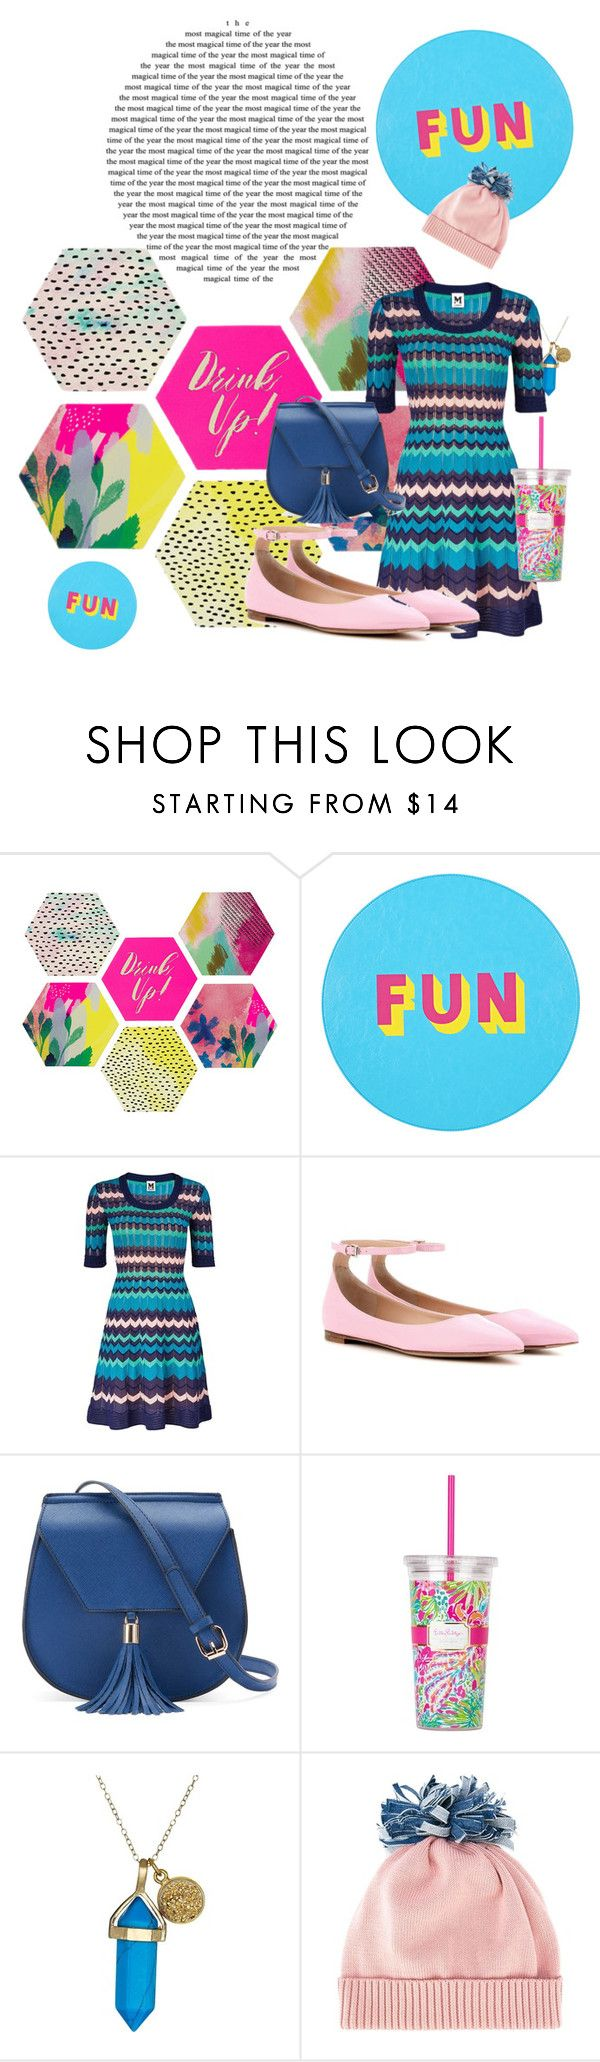 """""""Rebelion"""" by pao-mechanic ❤ liked on Polyvore featuring Talking Tables, Lisa Perry, M Missoni, Gianvito Rossi, Yoki, Lilly Pulitzer, Dee Berkley and Federica Moretti"""